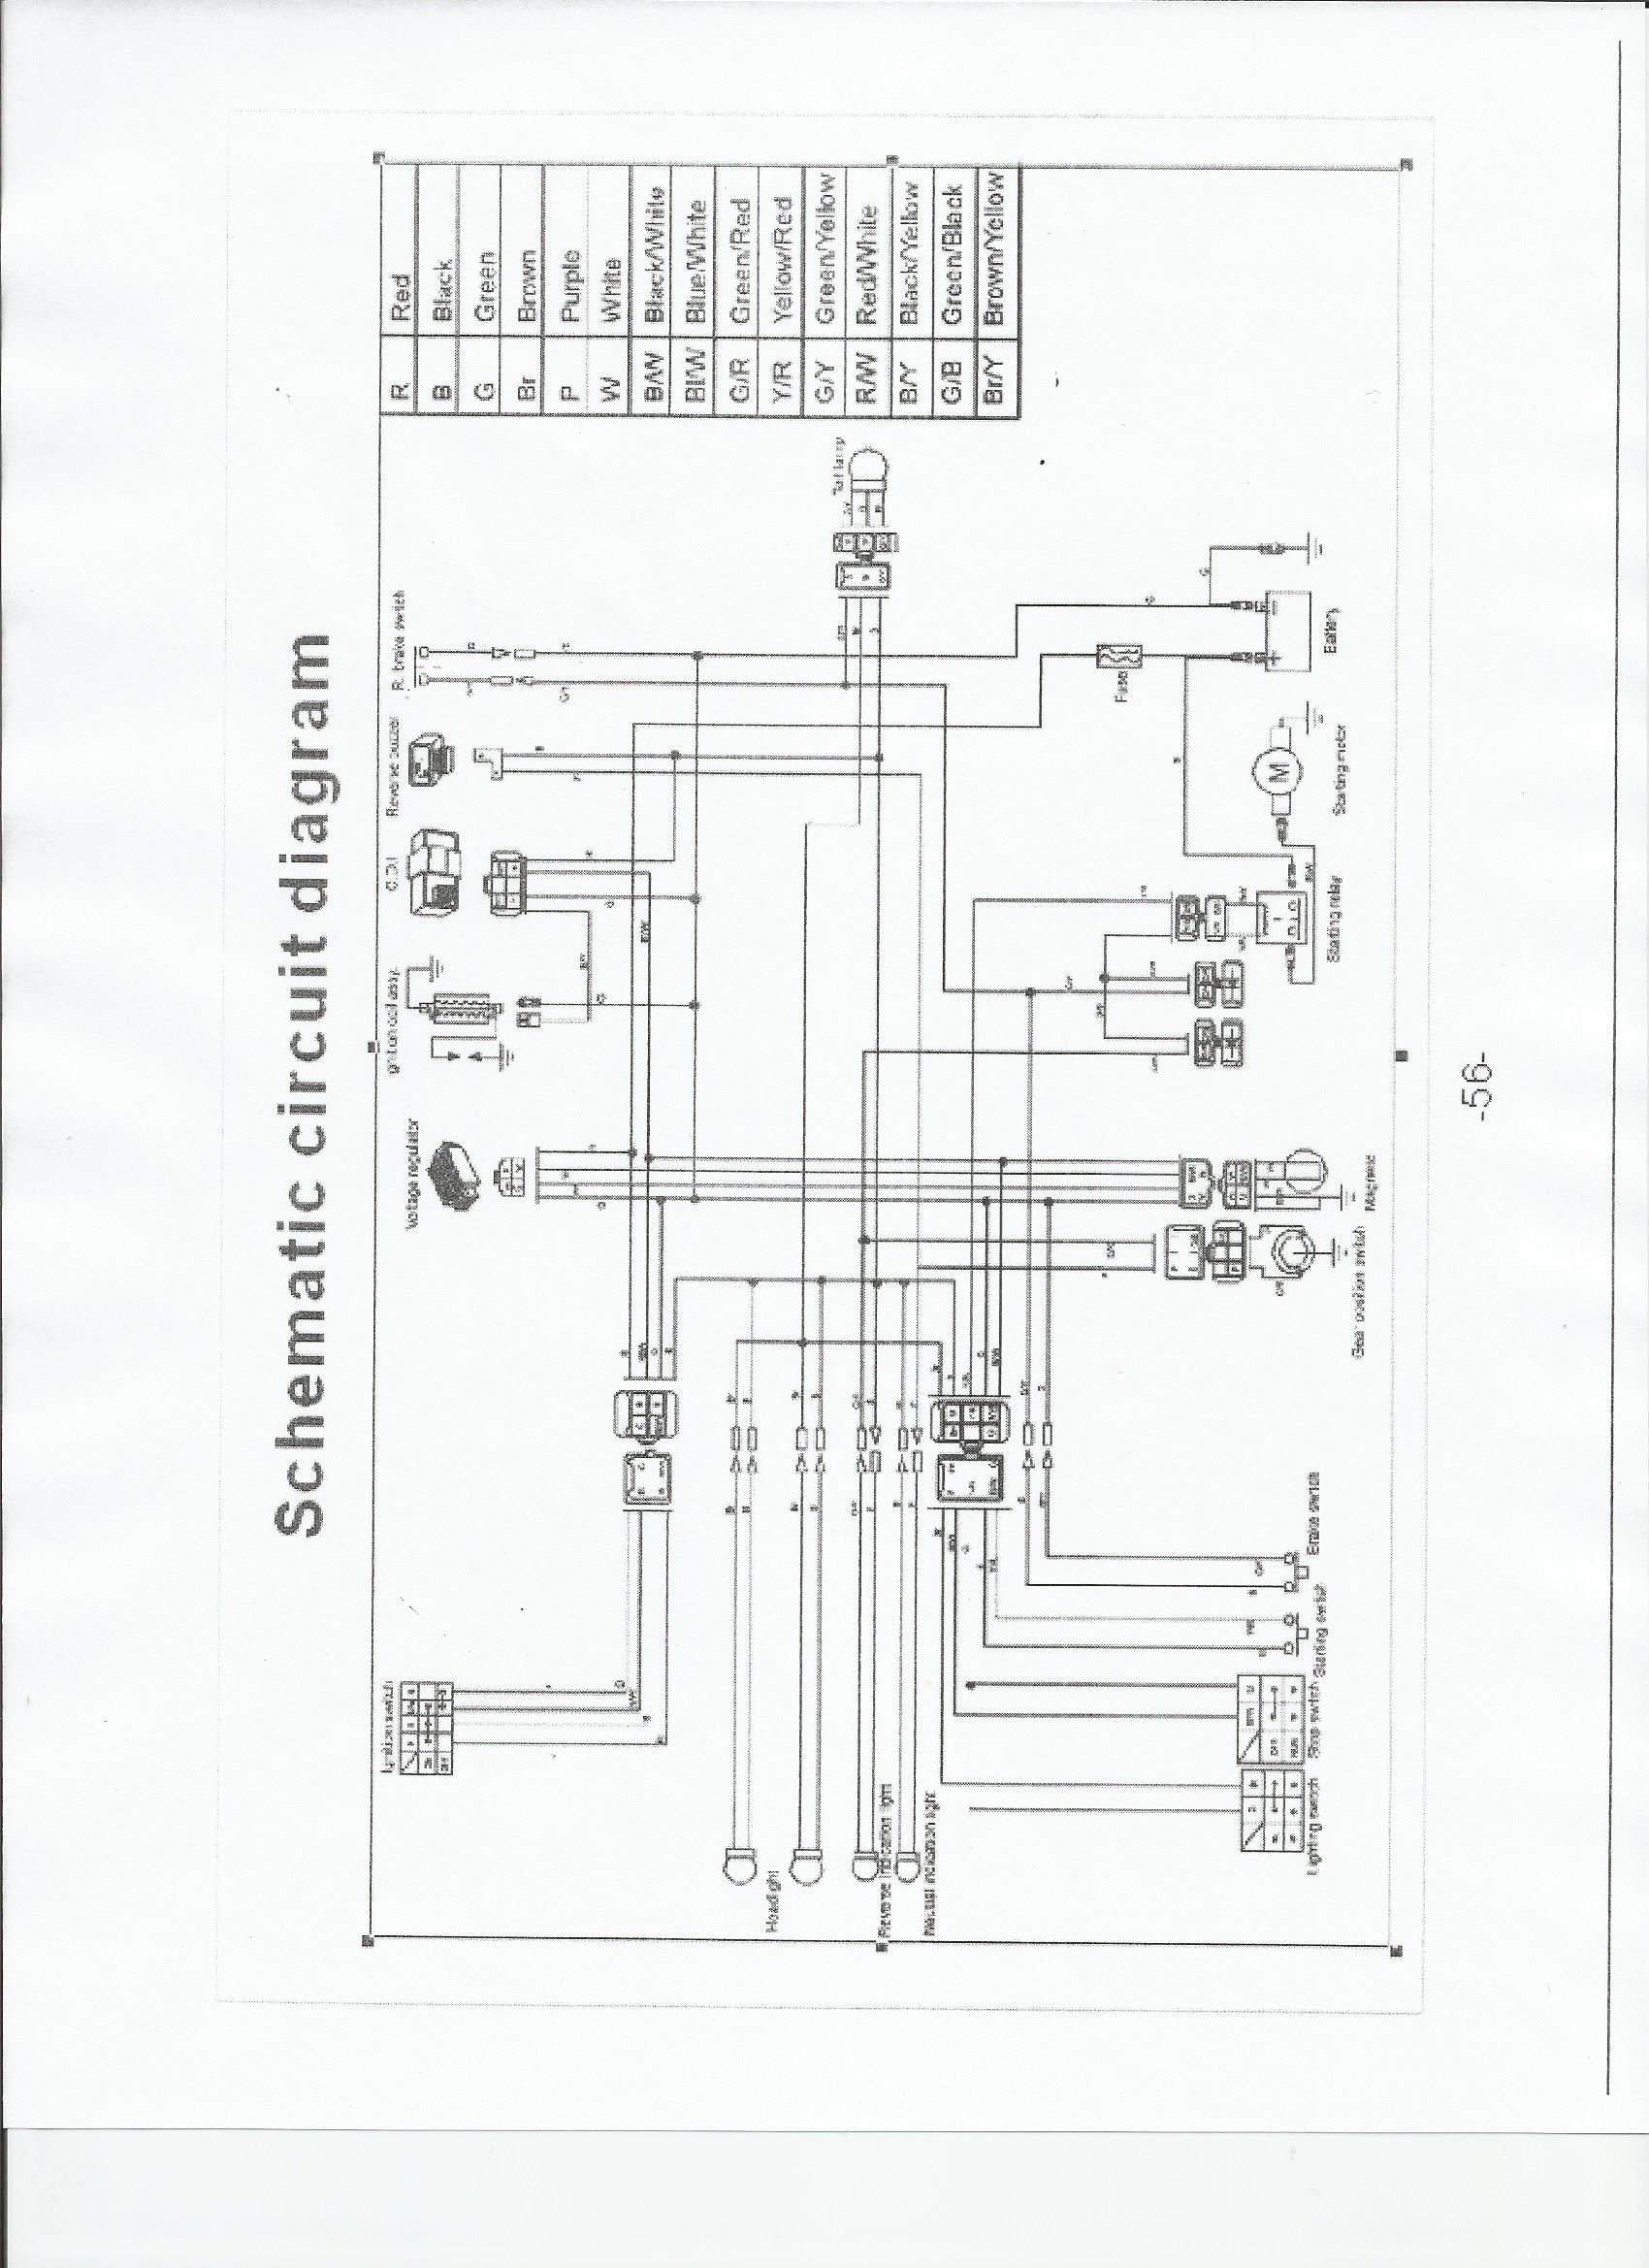 tao tao wiring schematic taotao ata 125d wiring diagram tao tao 125 wiring diagram \u2022 wiring bashan scooter wiring diagram at webbmarketing.co